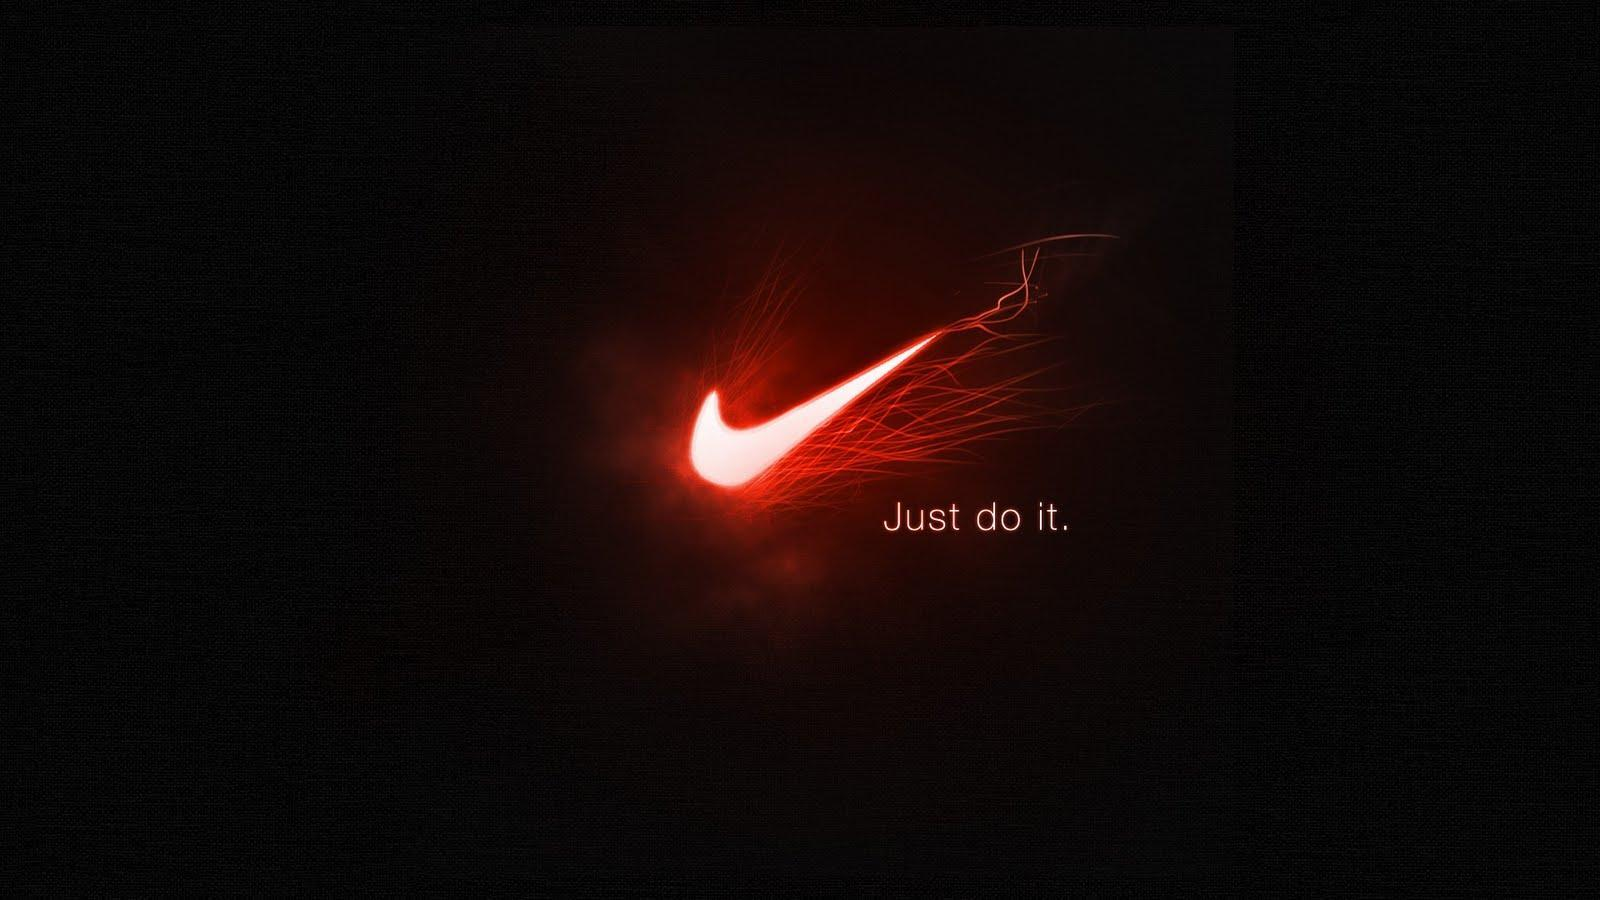 american football quotes nike - photo #24